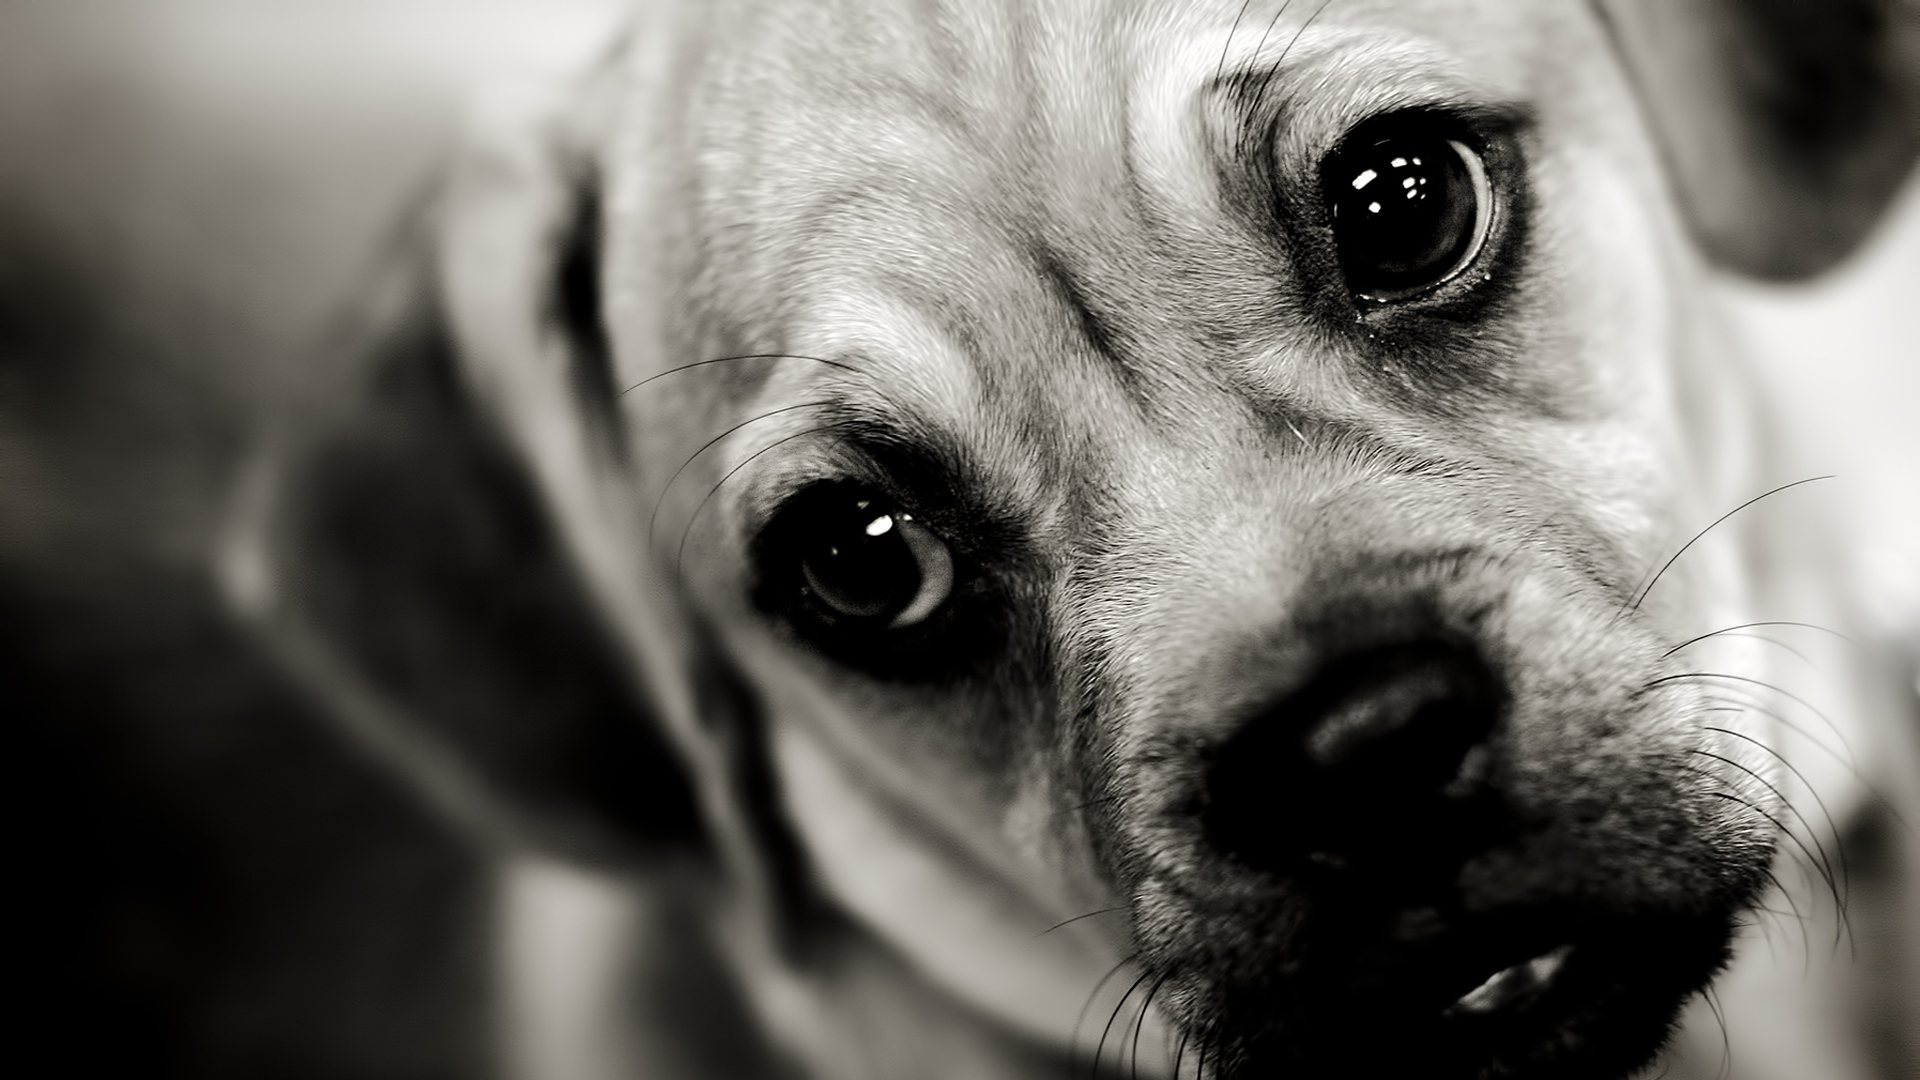 Dog HD Wallpapers 1920x1080 - WallpaperSafari